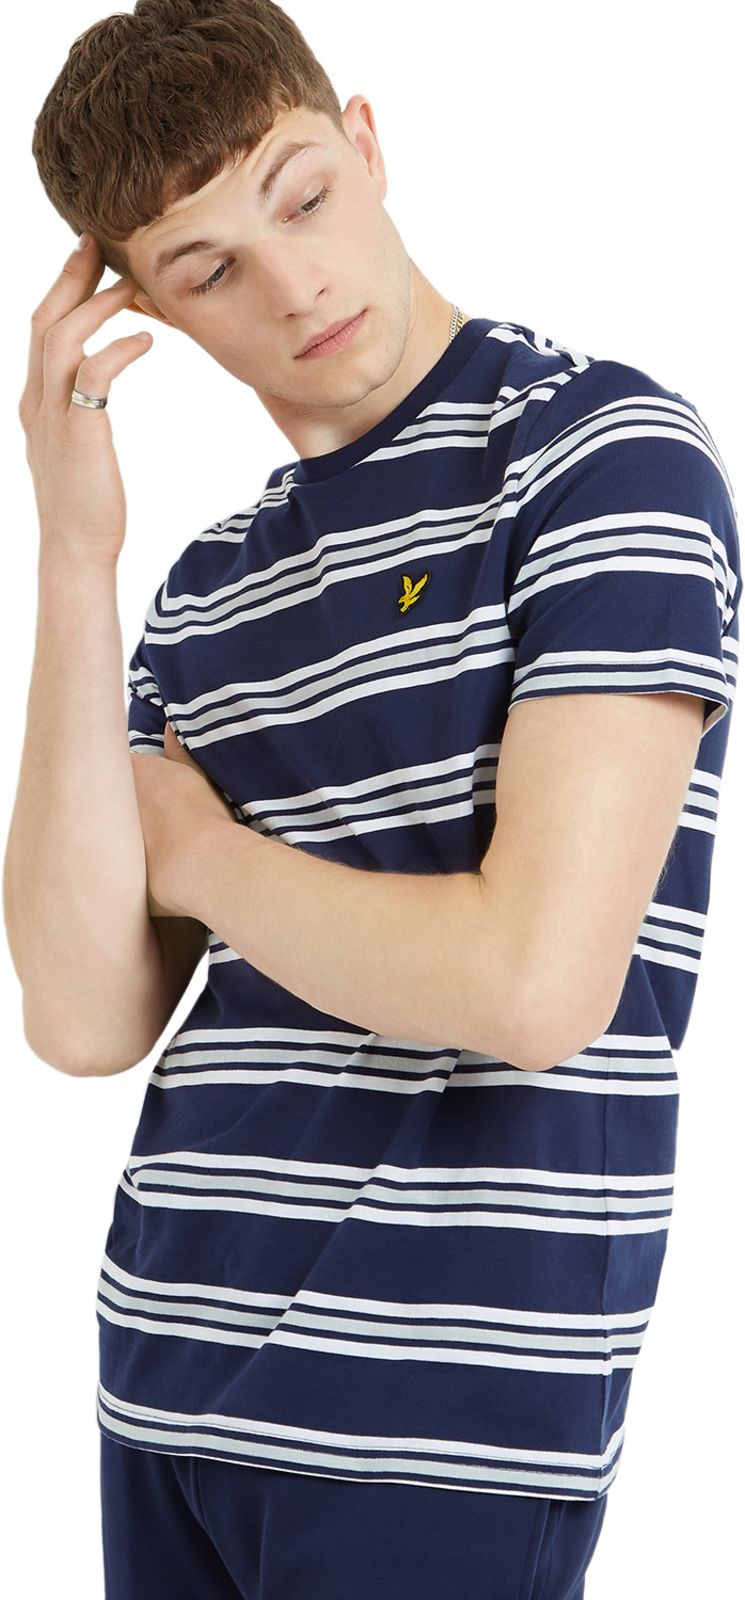 Lyle & Scott Multi Stripe T-Shirt